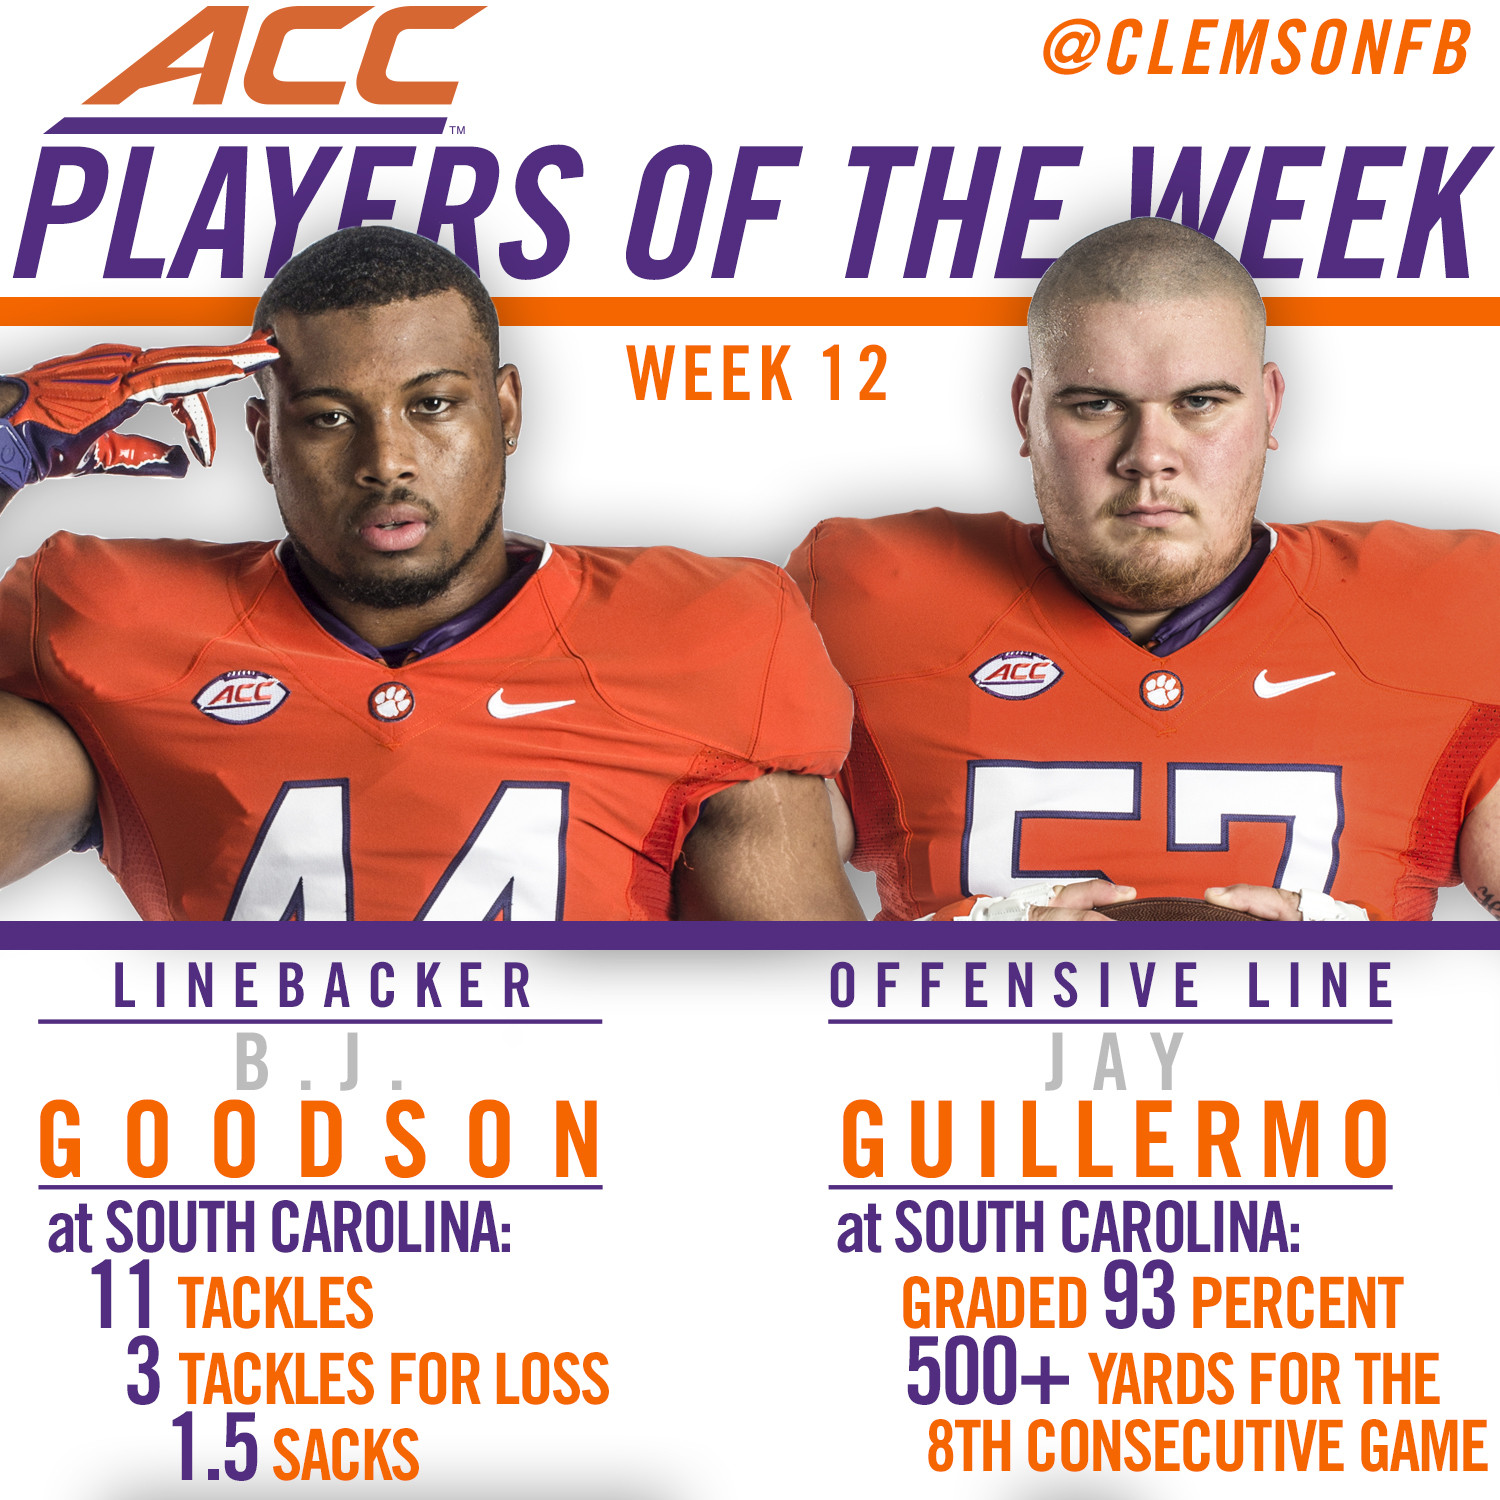 Two Tigers Earn Weekly ACC Honors